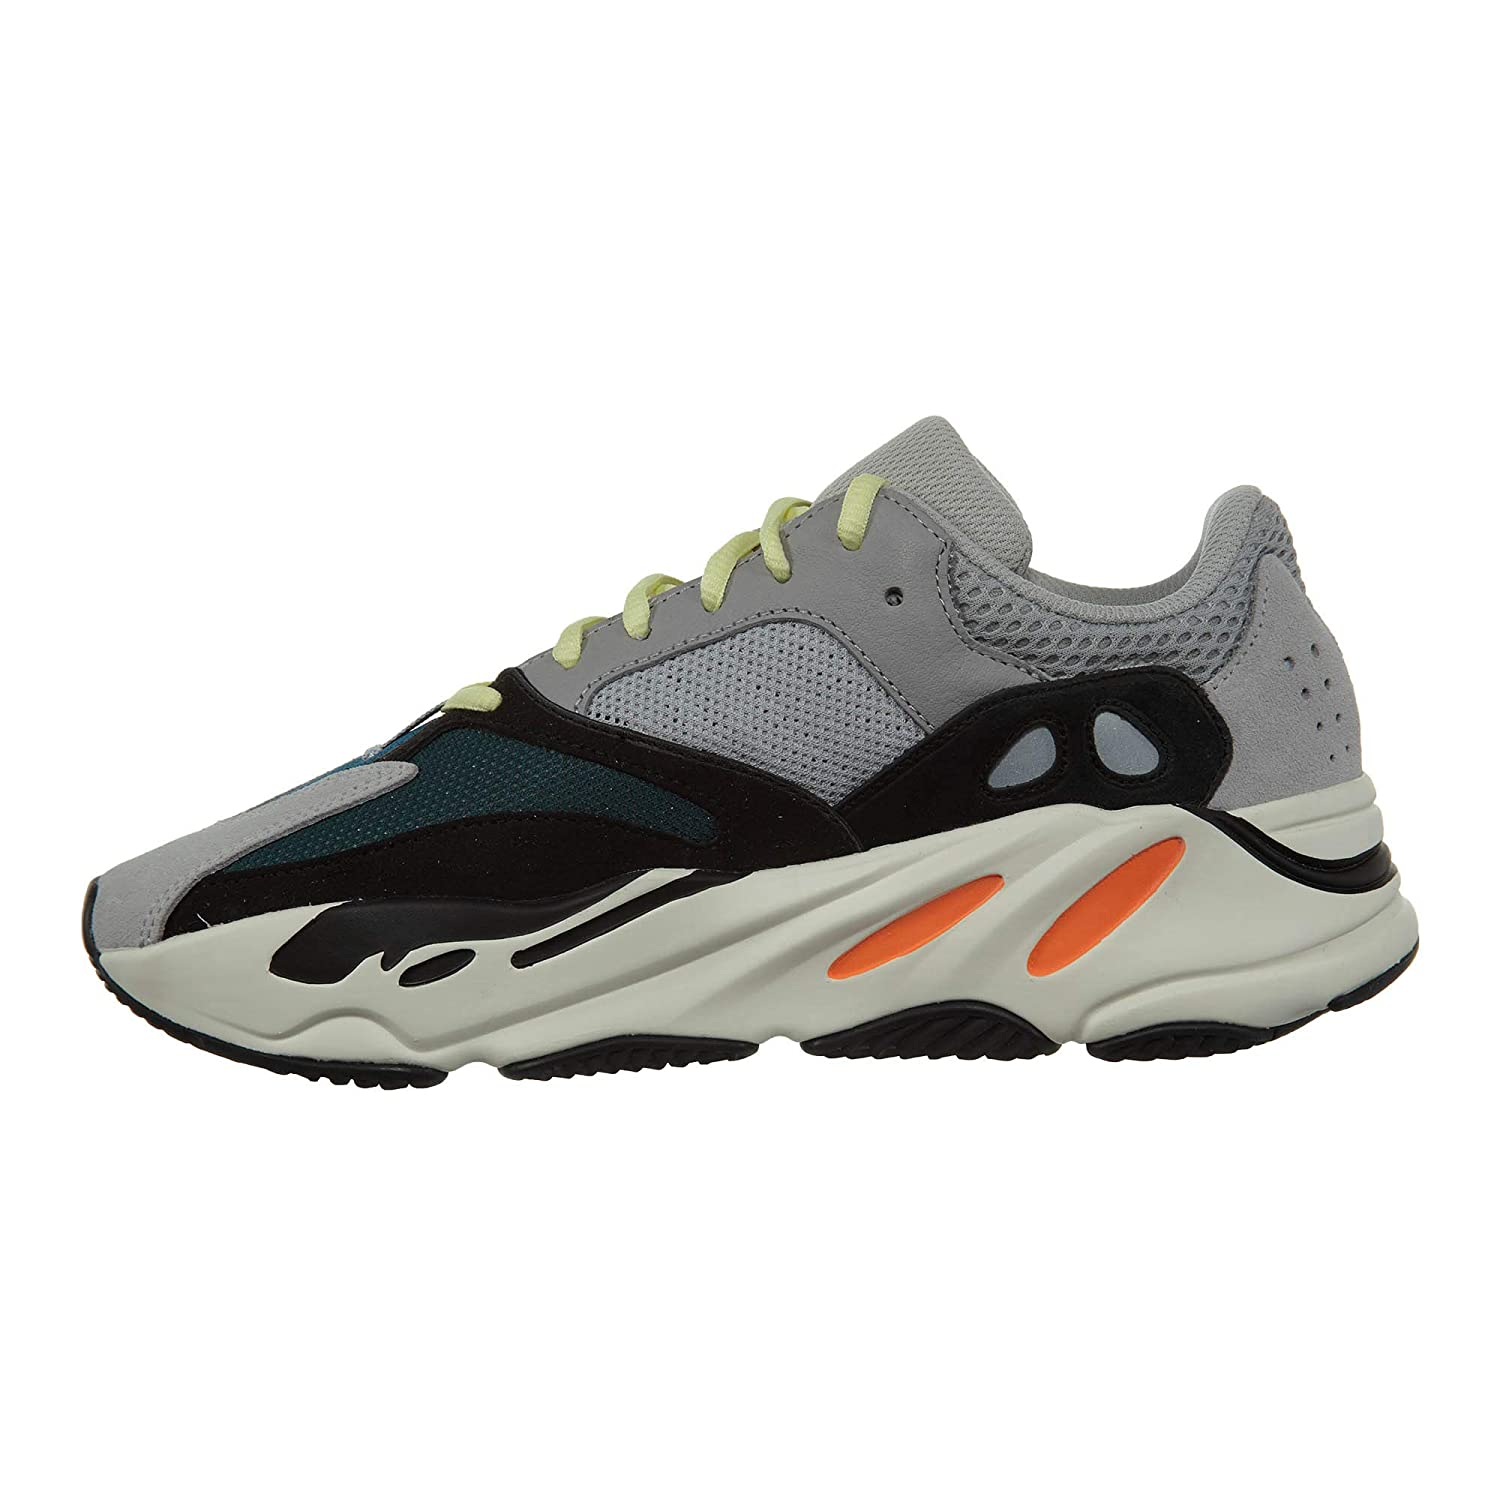 615357b97d1 adidas Yeezy Boost 700 \Wave Runner Mens